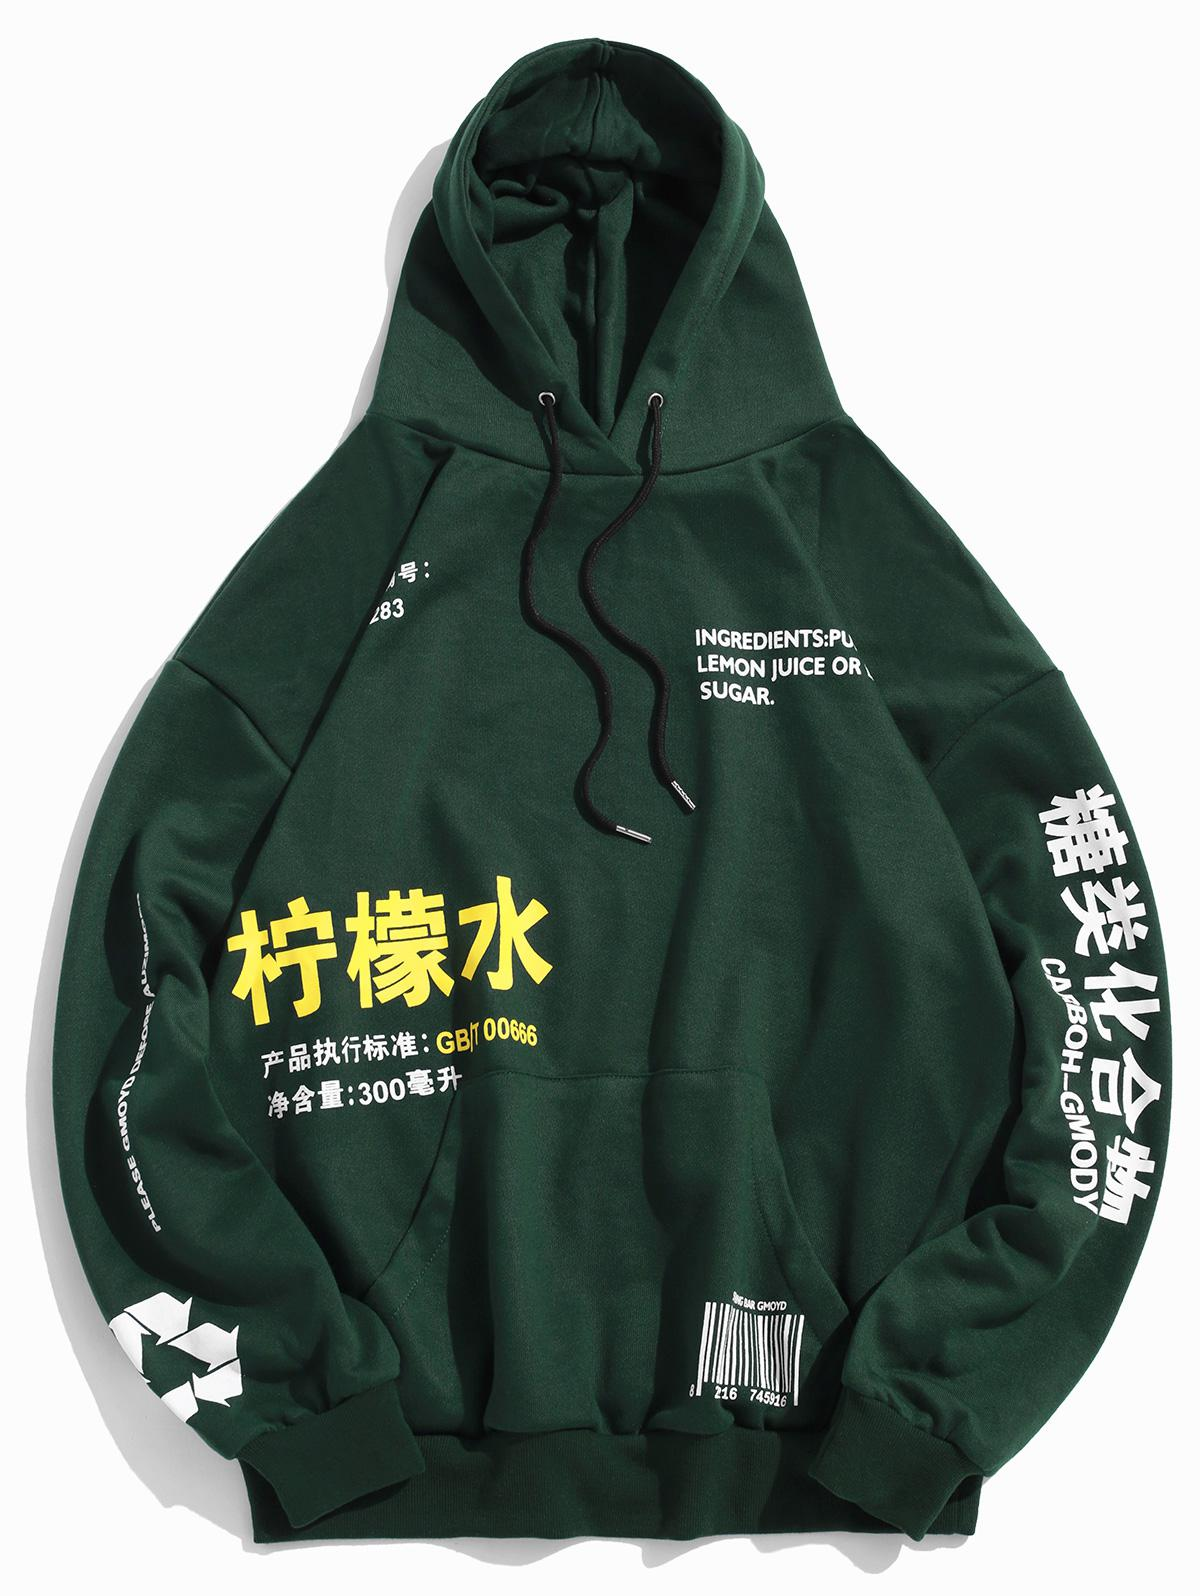 Chinese Lemonade Production Label Graphic Drop Shoulder Hoodie, Army green